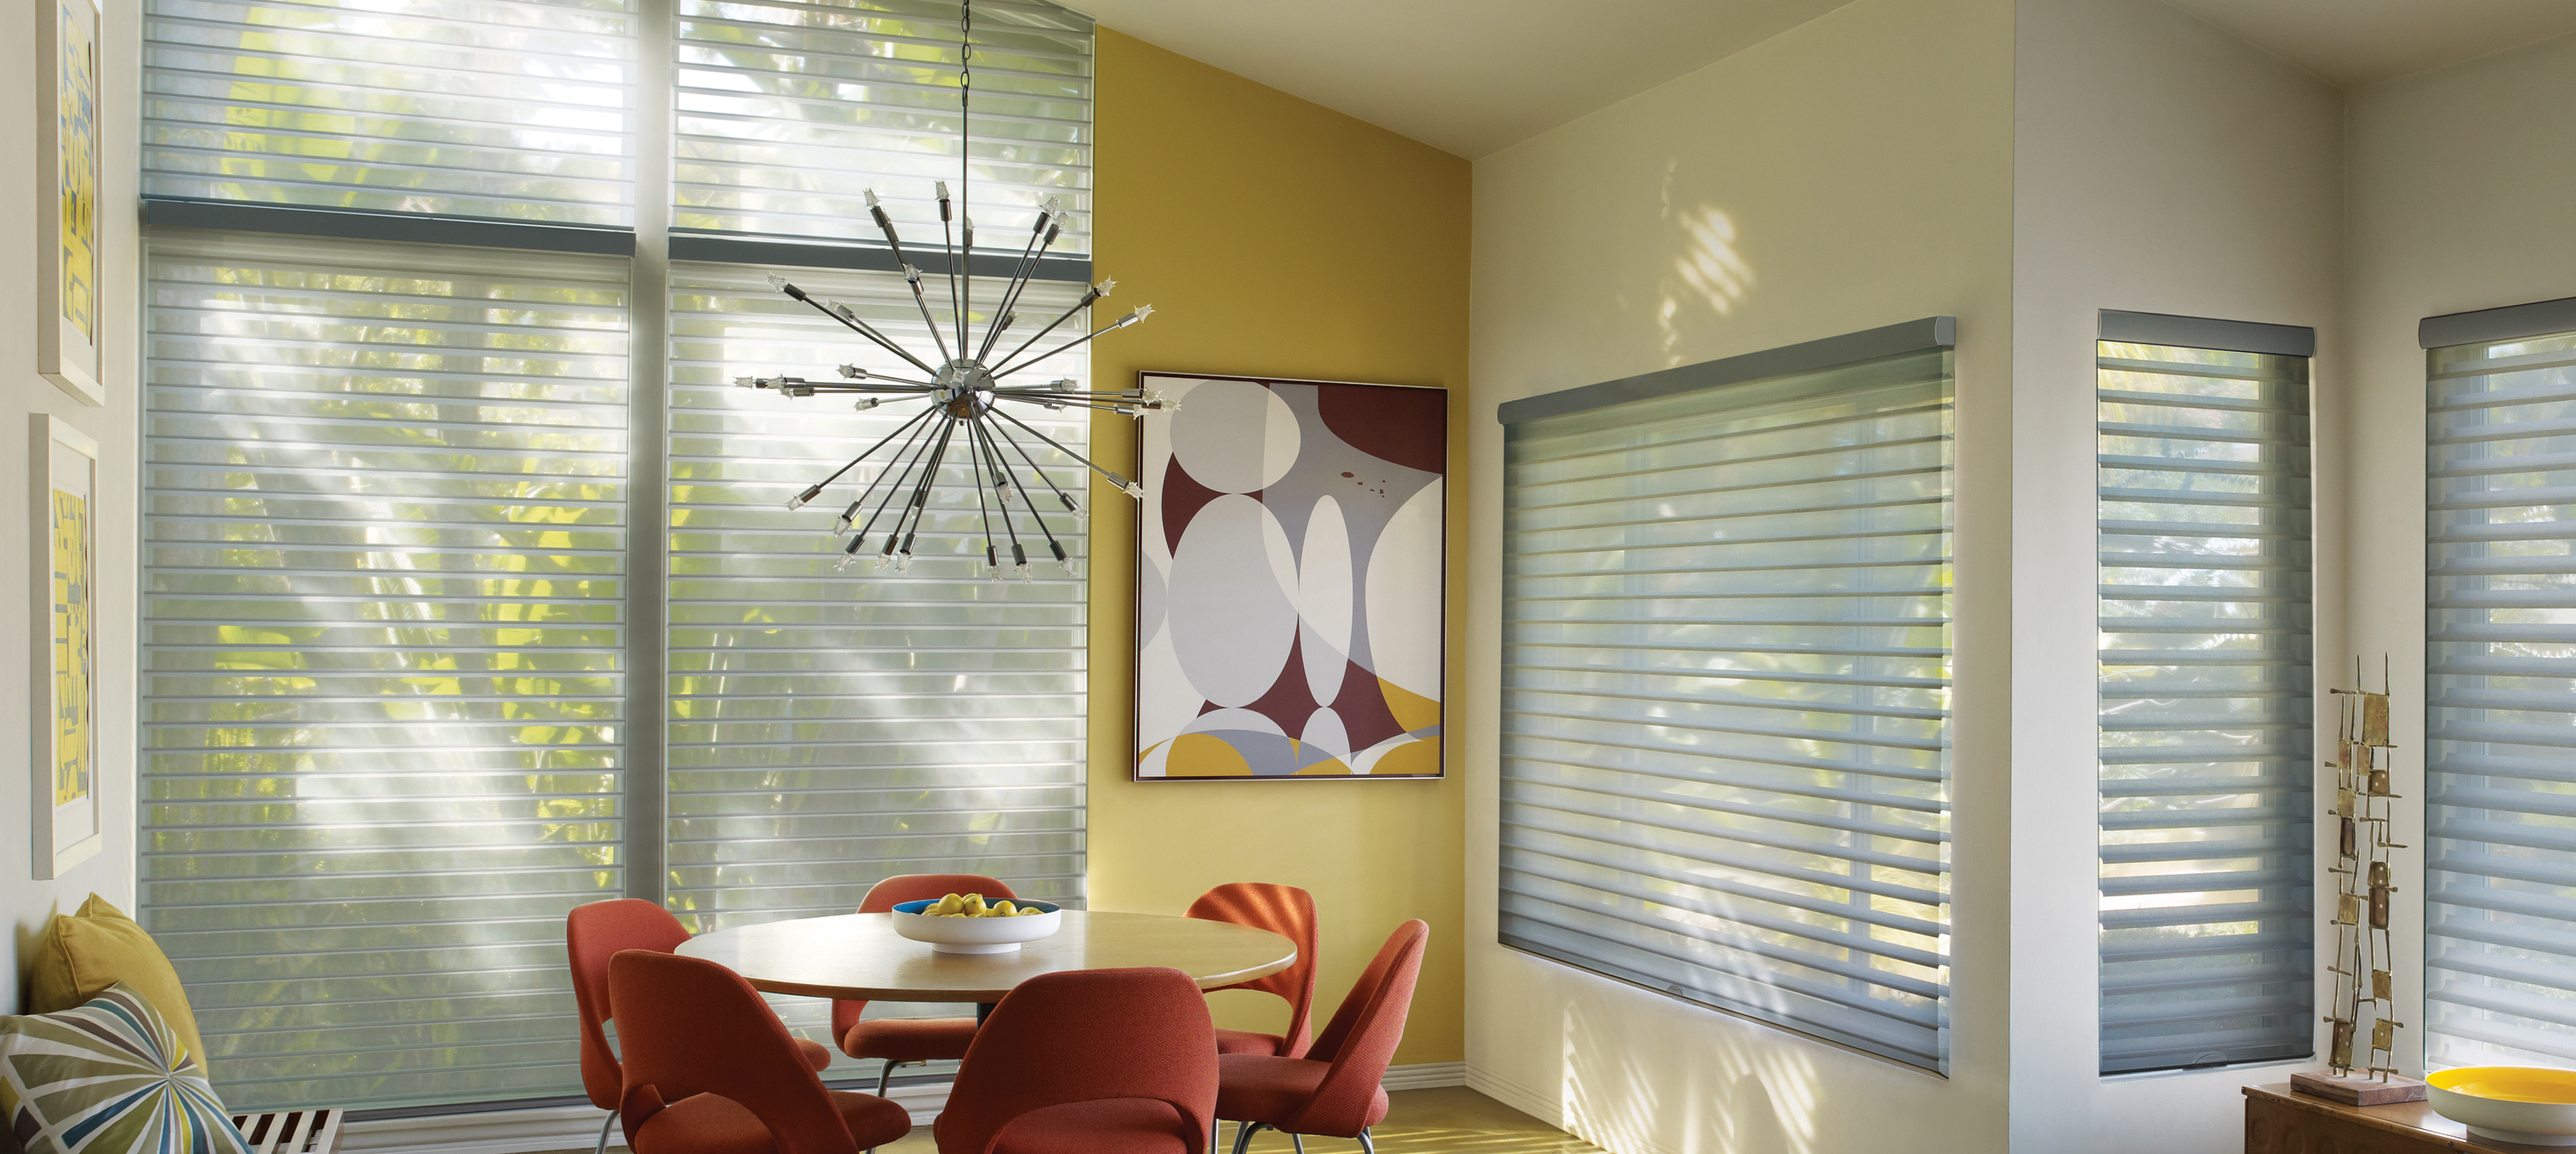 windows treatments silhouette york nyc shadings blinds in shades city hunter new window walls douglas